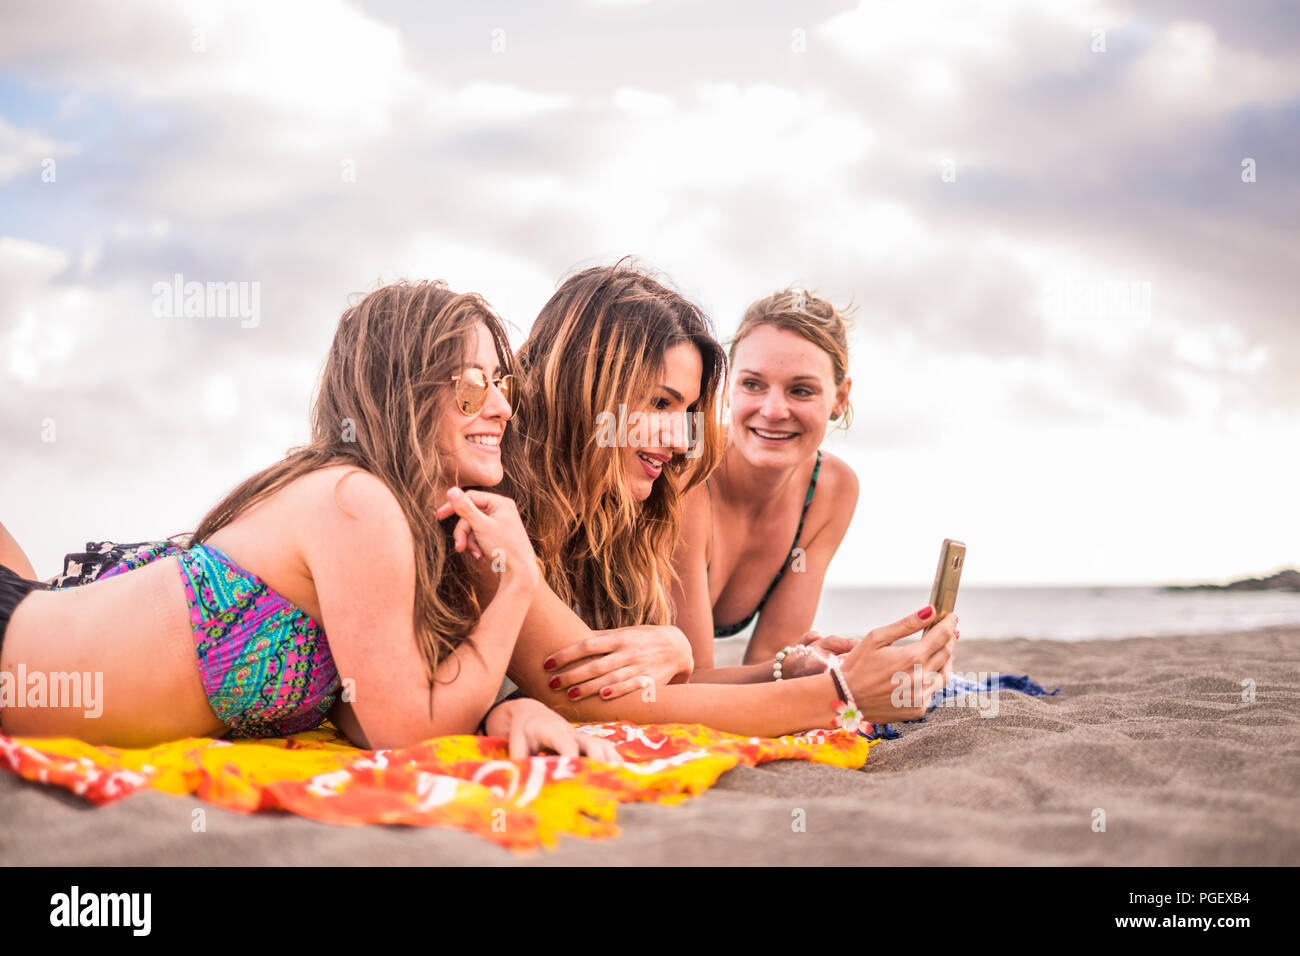 Pretty group of young females girl using a smart phone lying on the beach with the sea and horizon in the background. cheerful people enjoying the lif - Stock Image